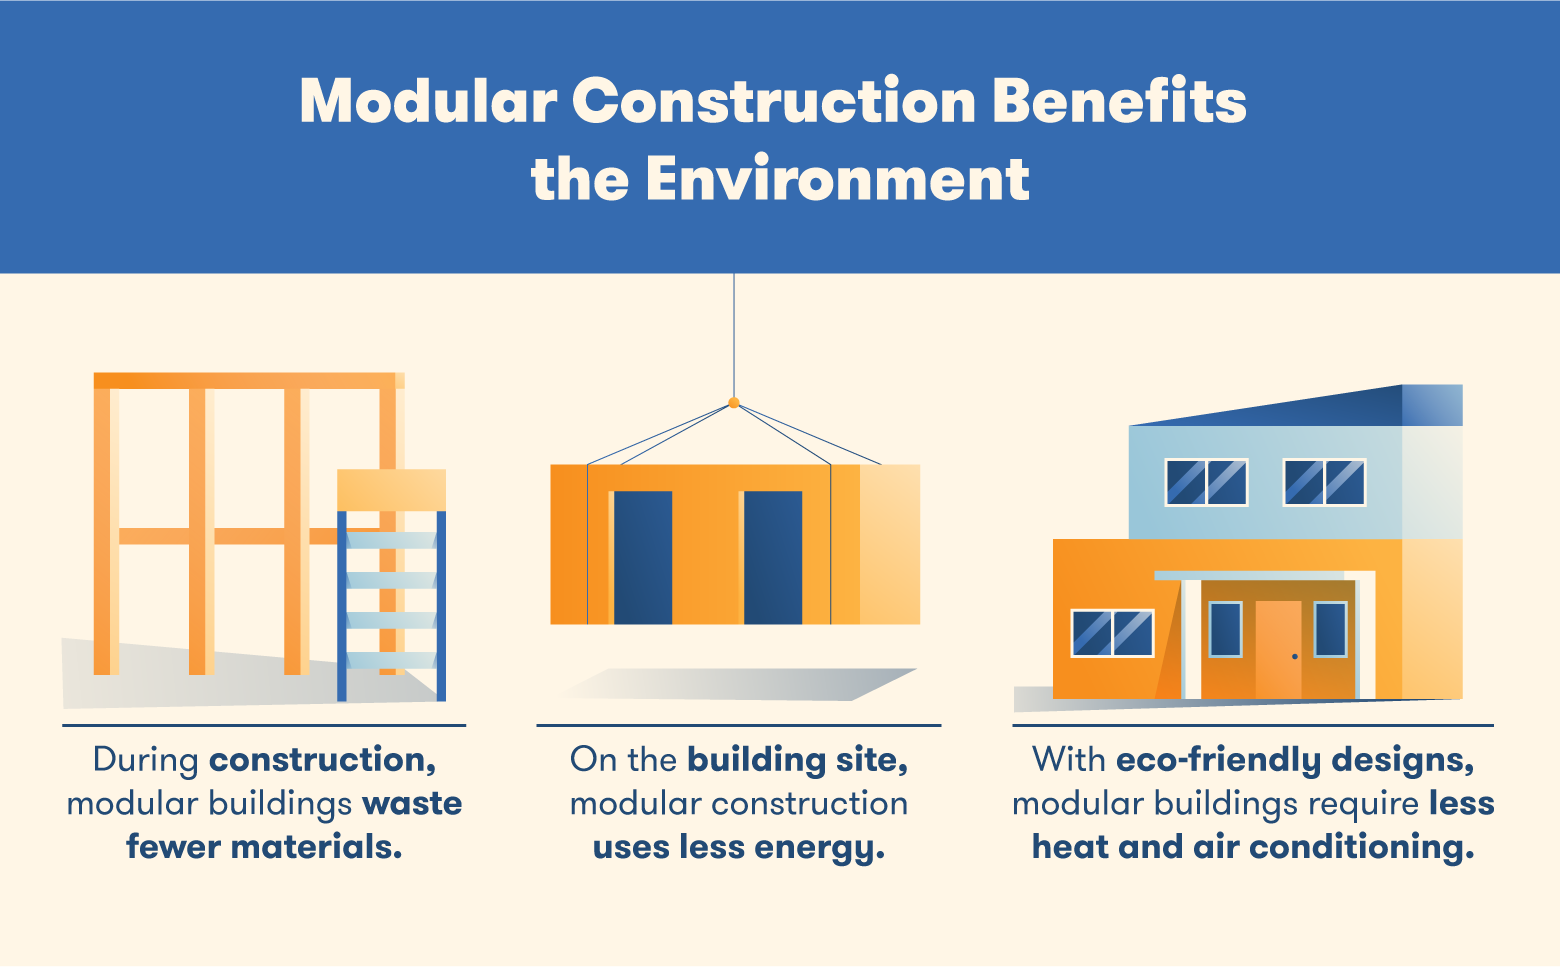 Modular construction involves less material waste, less use of energy, and eco-friendly designs.